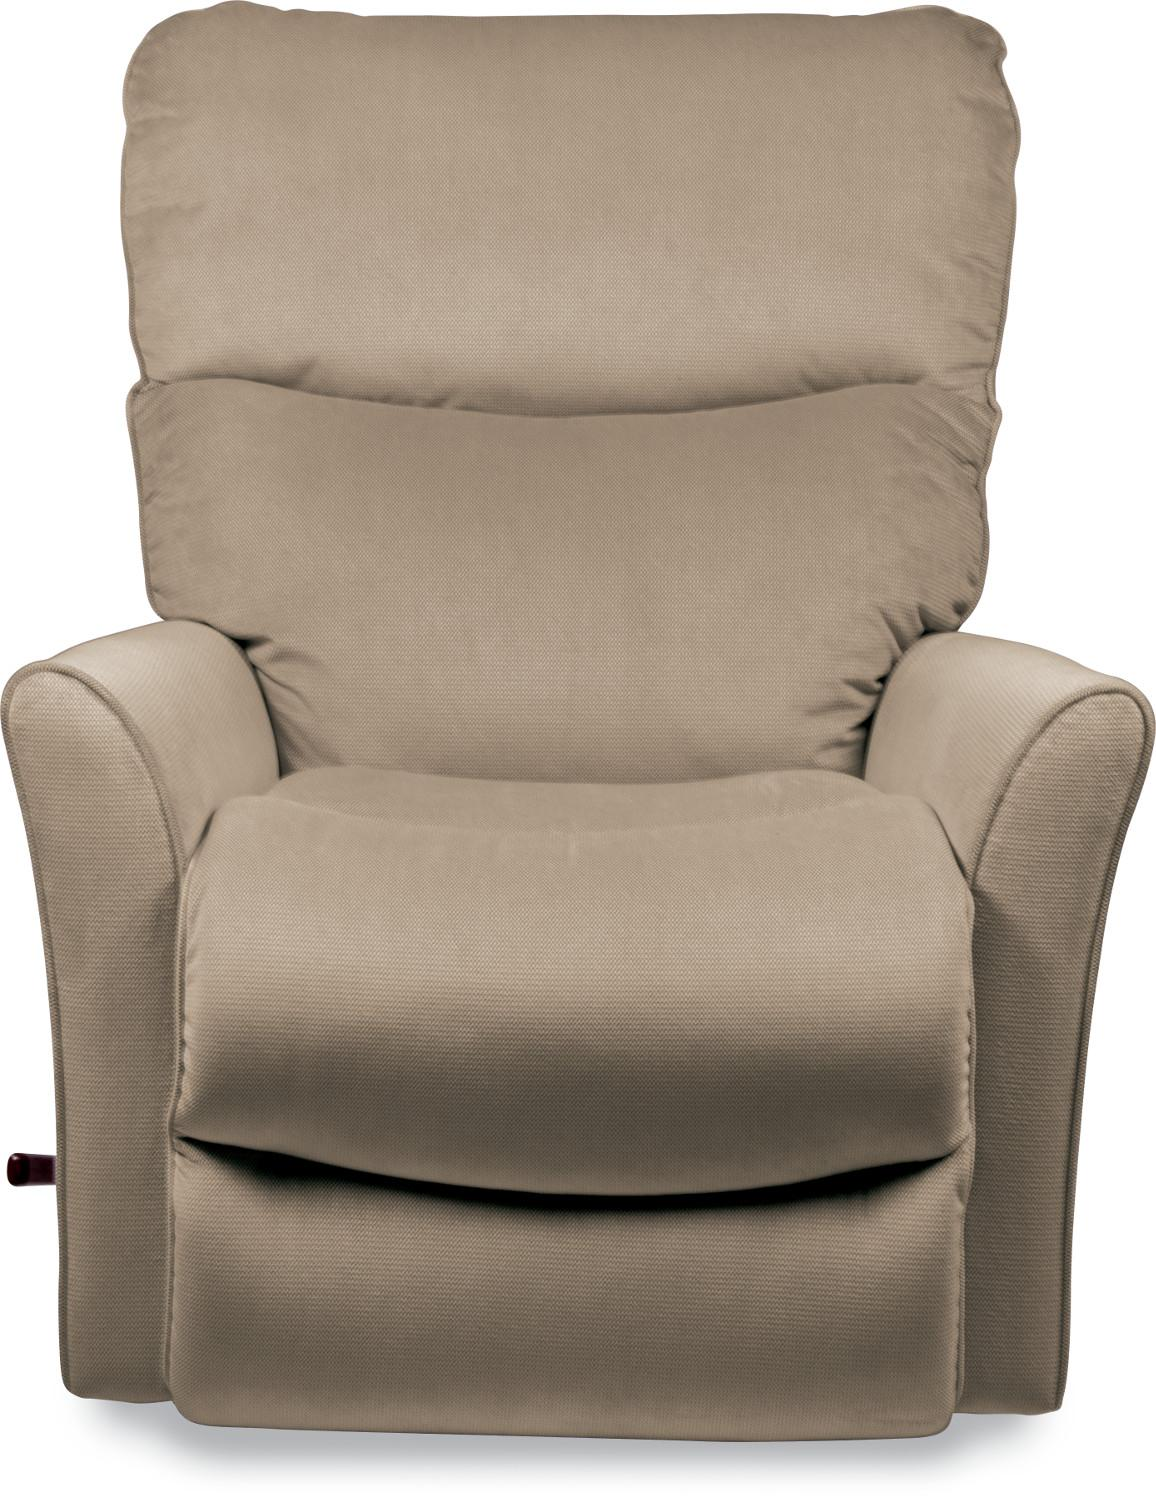 Lazy Boy Swivel Chair La Z Boy Rowan Rowan Small Scale Reclina Glider Swivel Recliner